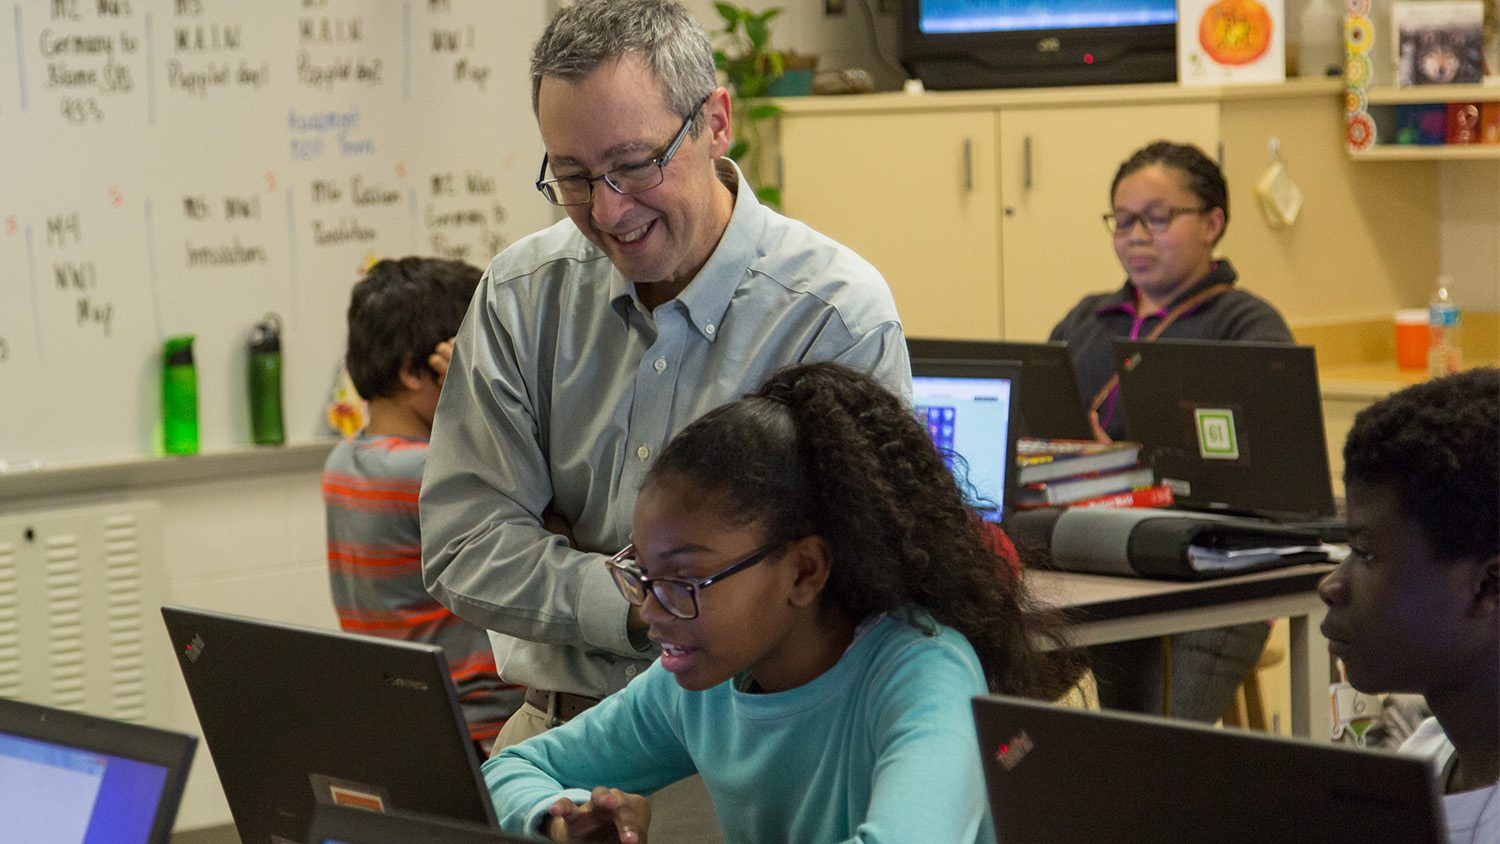 NC State College of Education Professor and Friday Institute Fellow Eric Wiebe works with students at Centennial Campus Middle School.